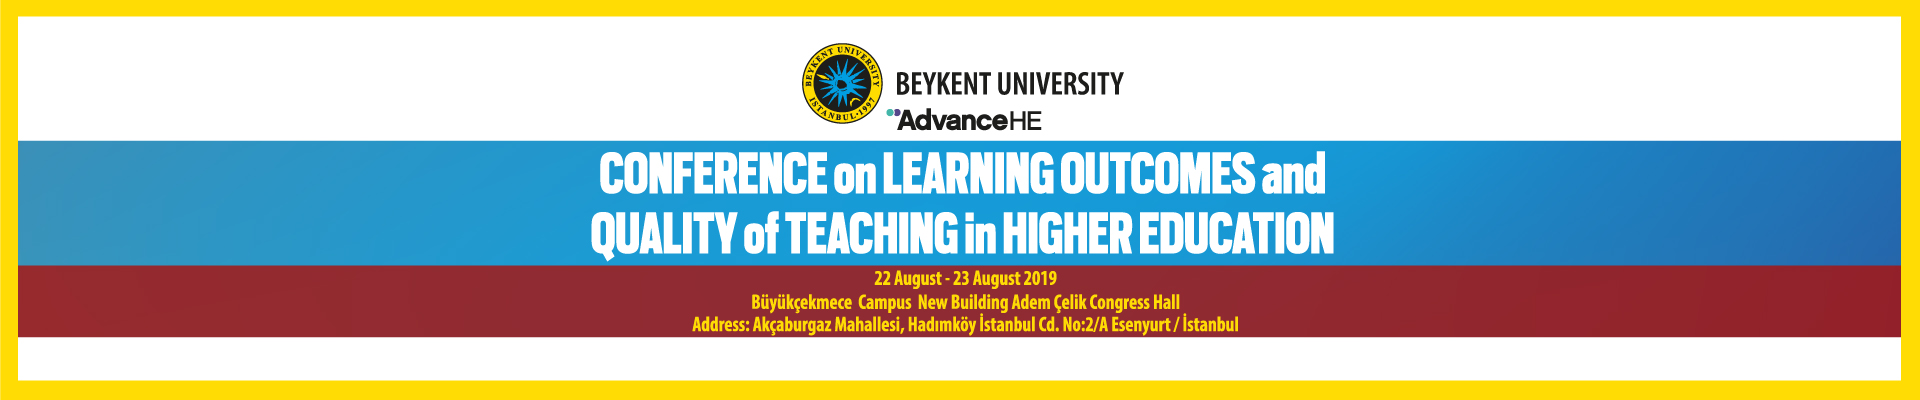 Conference on Learning Outcomes and Quality of Teaching in Higher Education